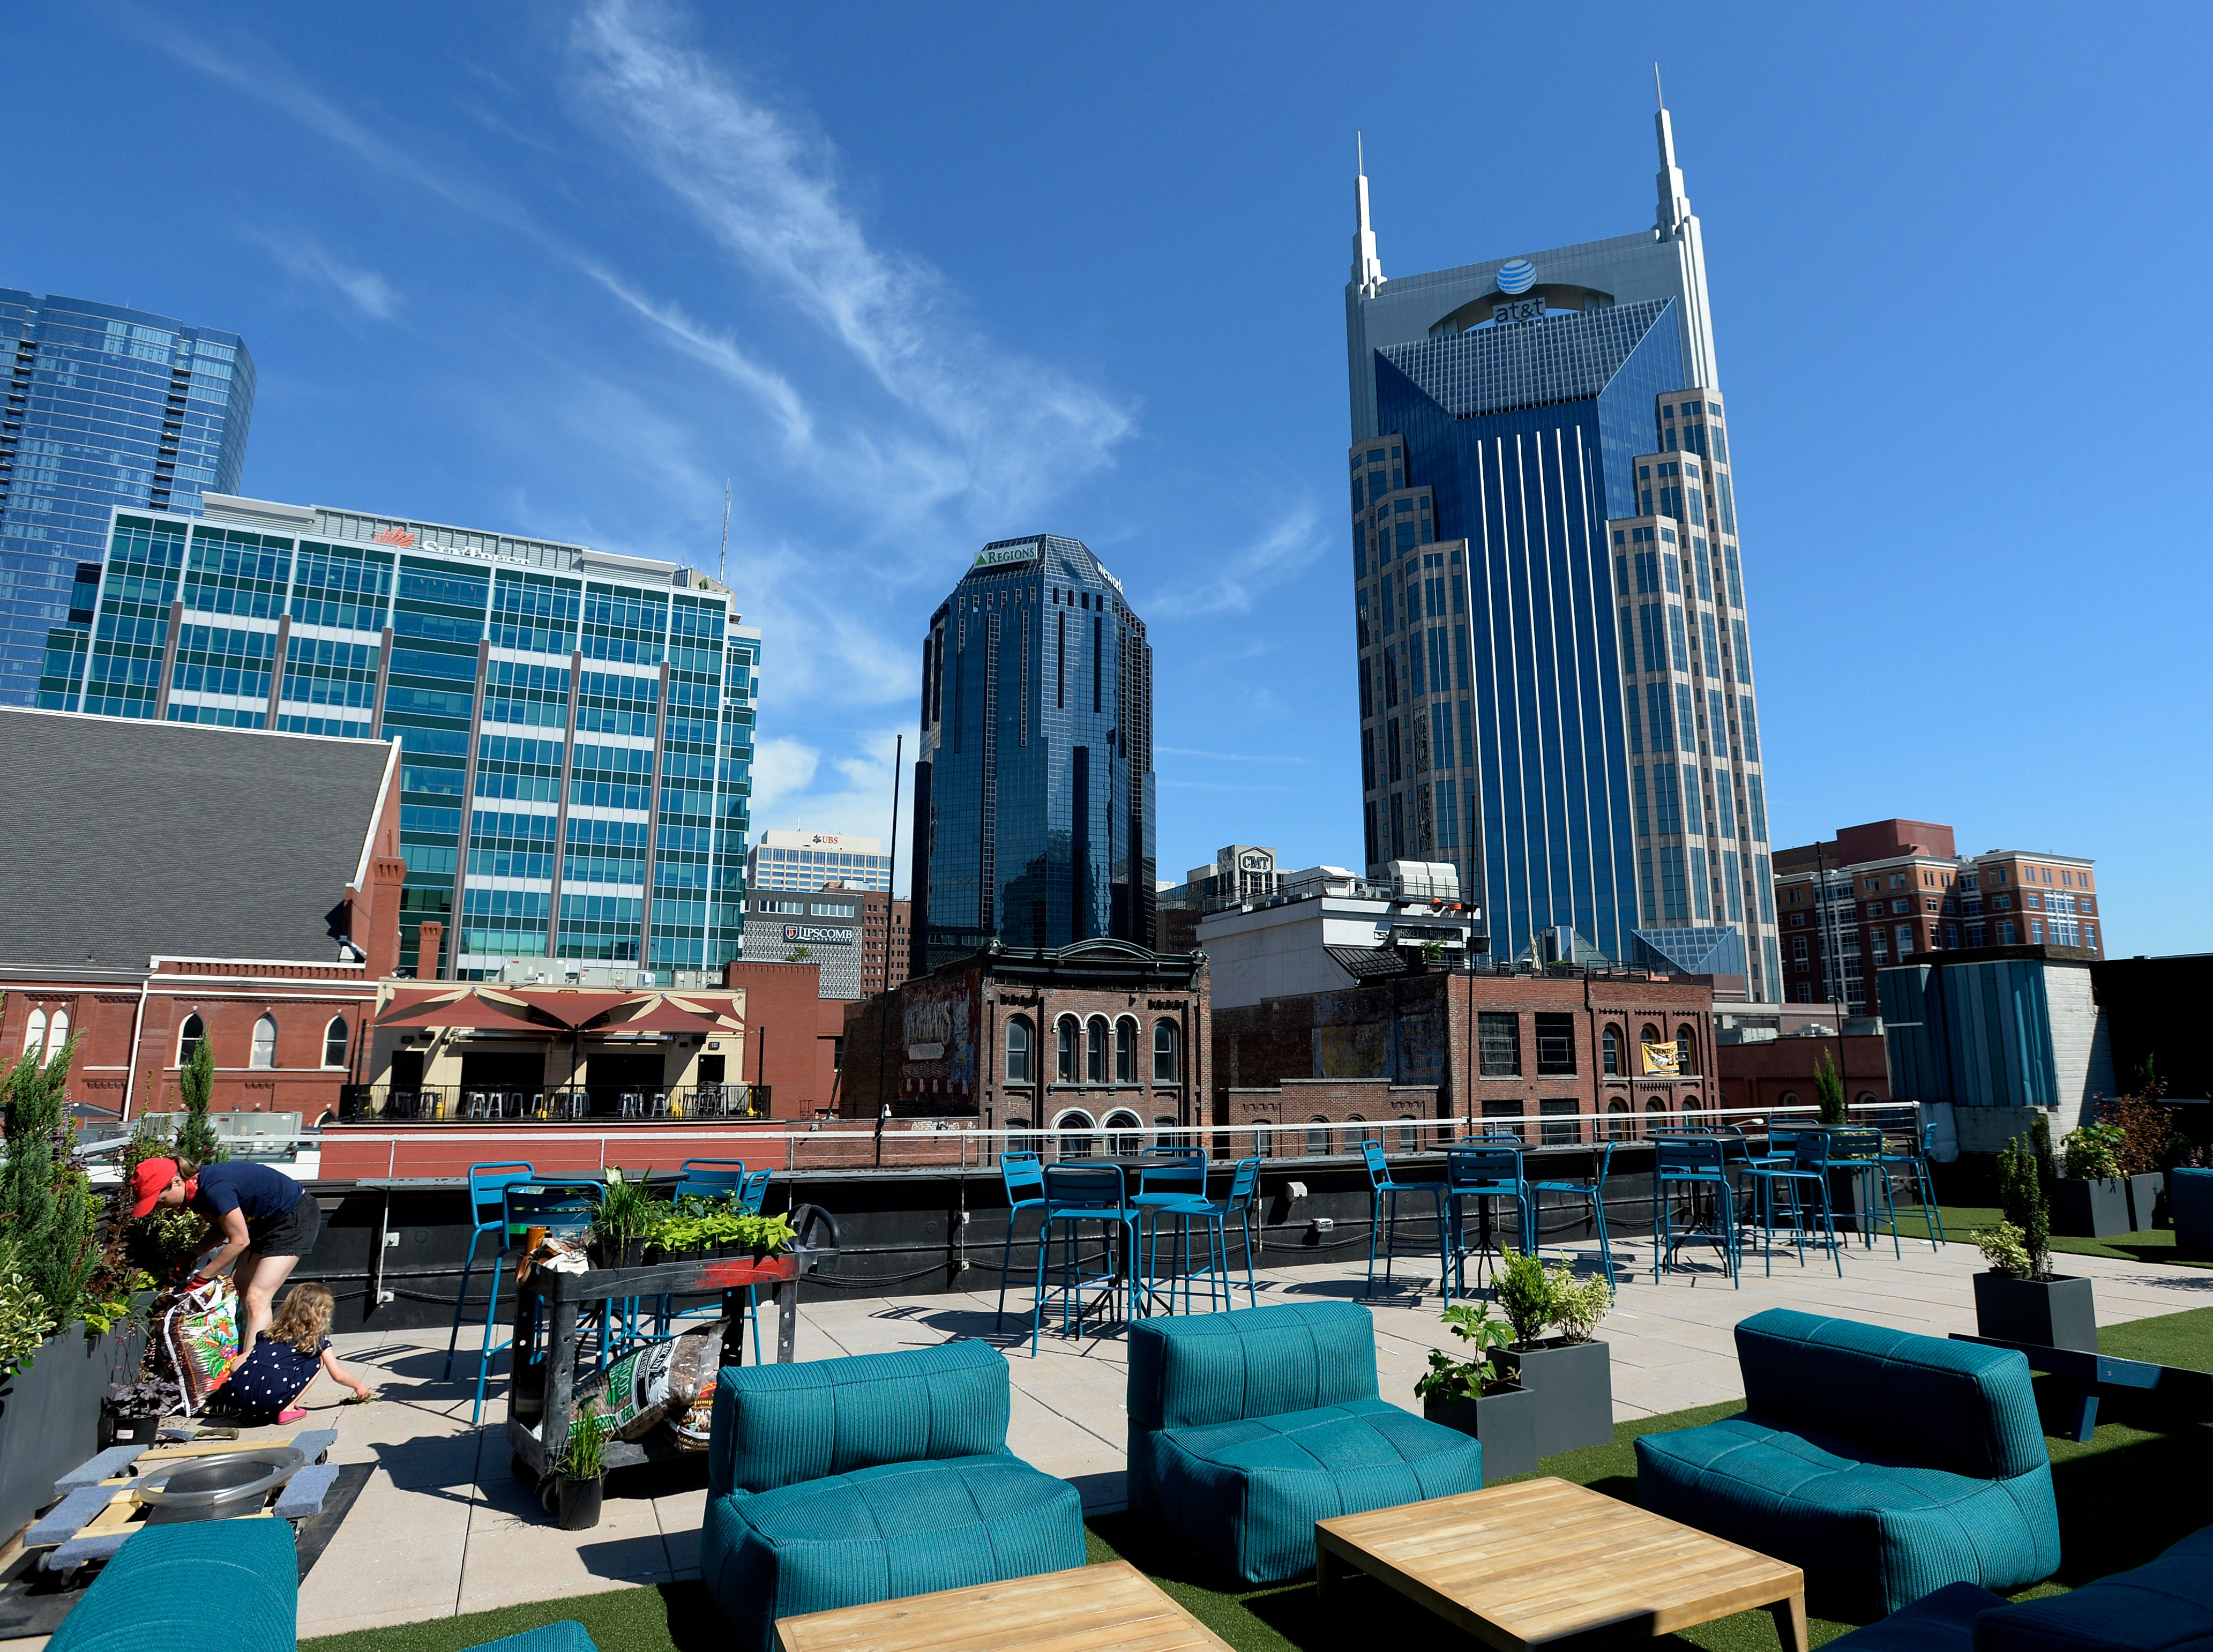 The Downtown Sporting Club roof top and bar area on Monday, April 22, 2019 in Nashville, Tenn. The massive Downtown Sporting Club, owned by Max and Ben Goldberg, is on Lower Broadway and opening this week before the NFL Draft. It will include a restaurant, coffee shop, boutique lodging and an ax throwing area.